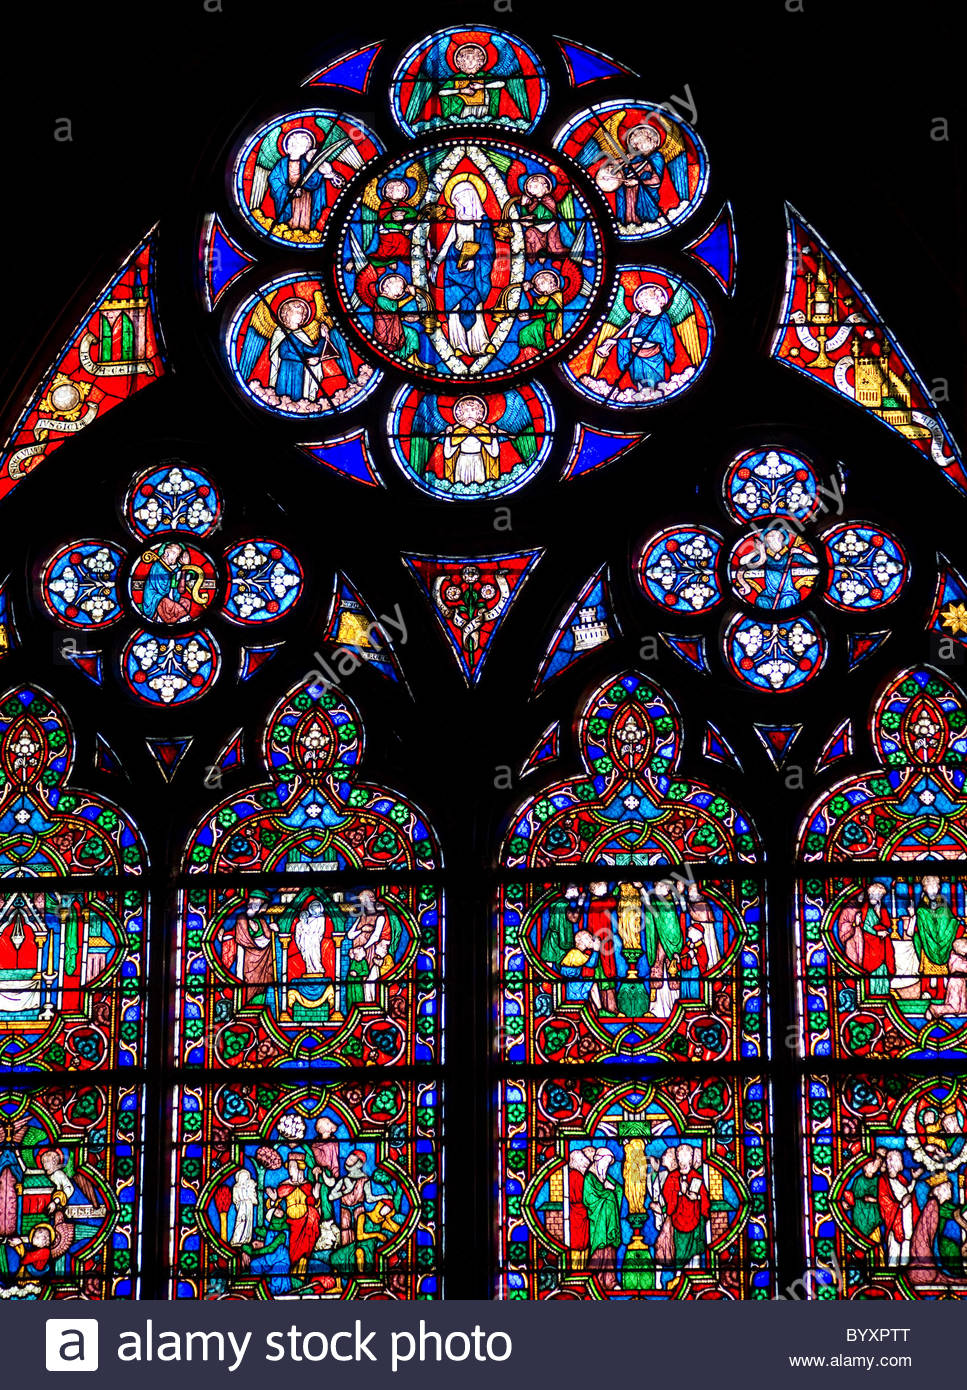 Stained glass windows inside a church - Paris France Stock Photo